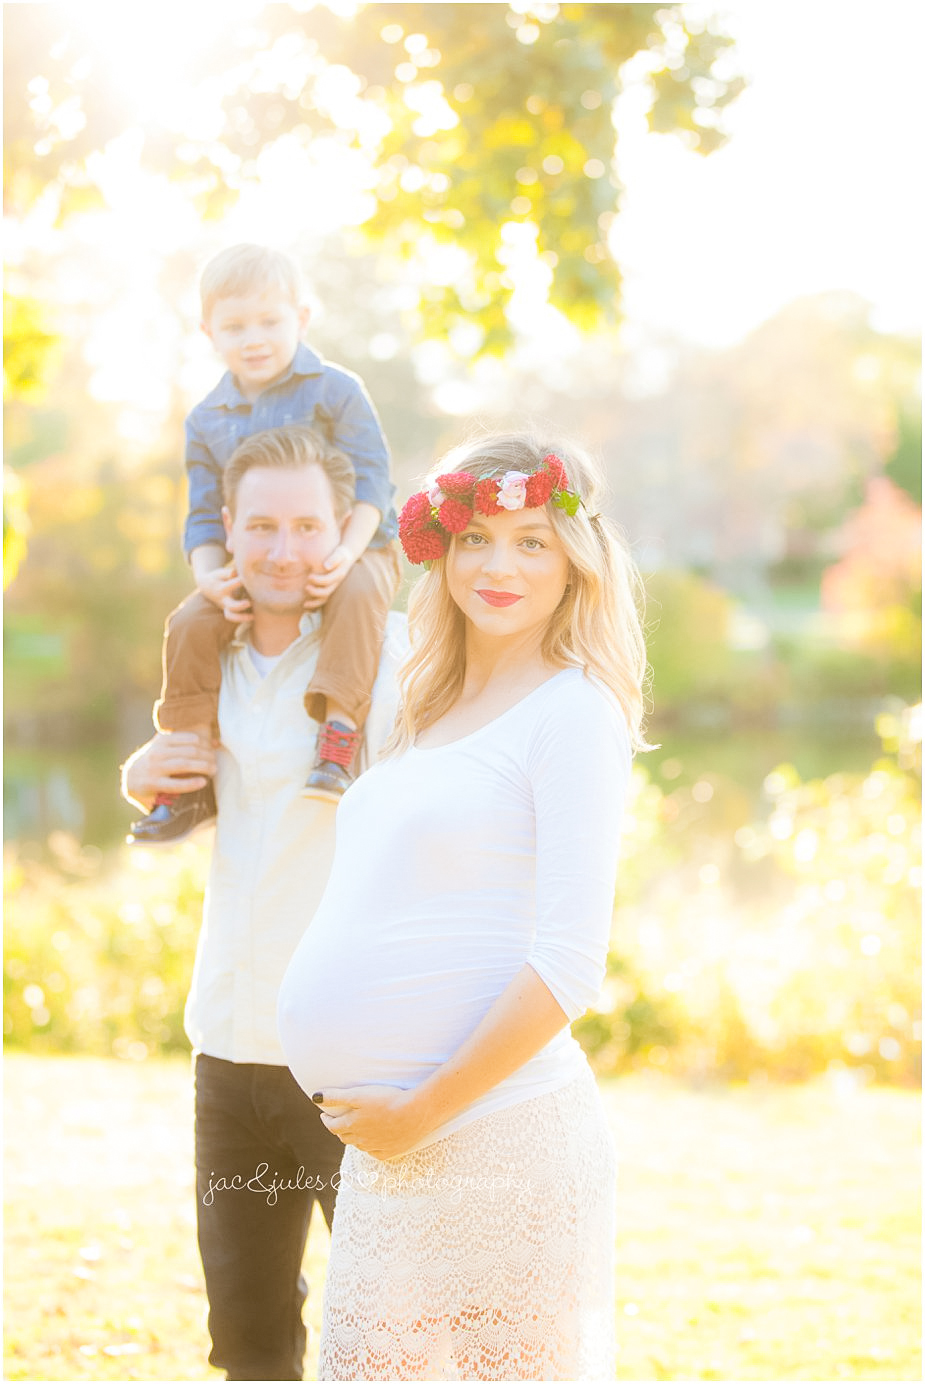 Beautiful family maternity photo taken by JacnJules photographed at gorgeous Spring Lake in NJ